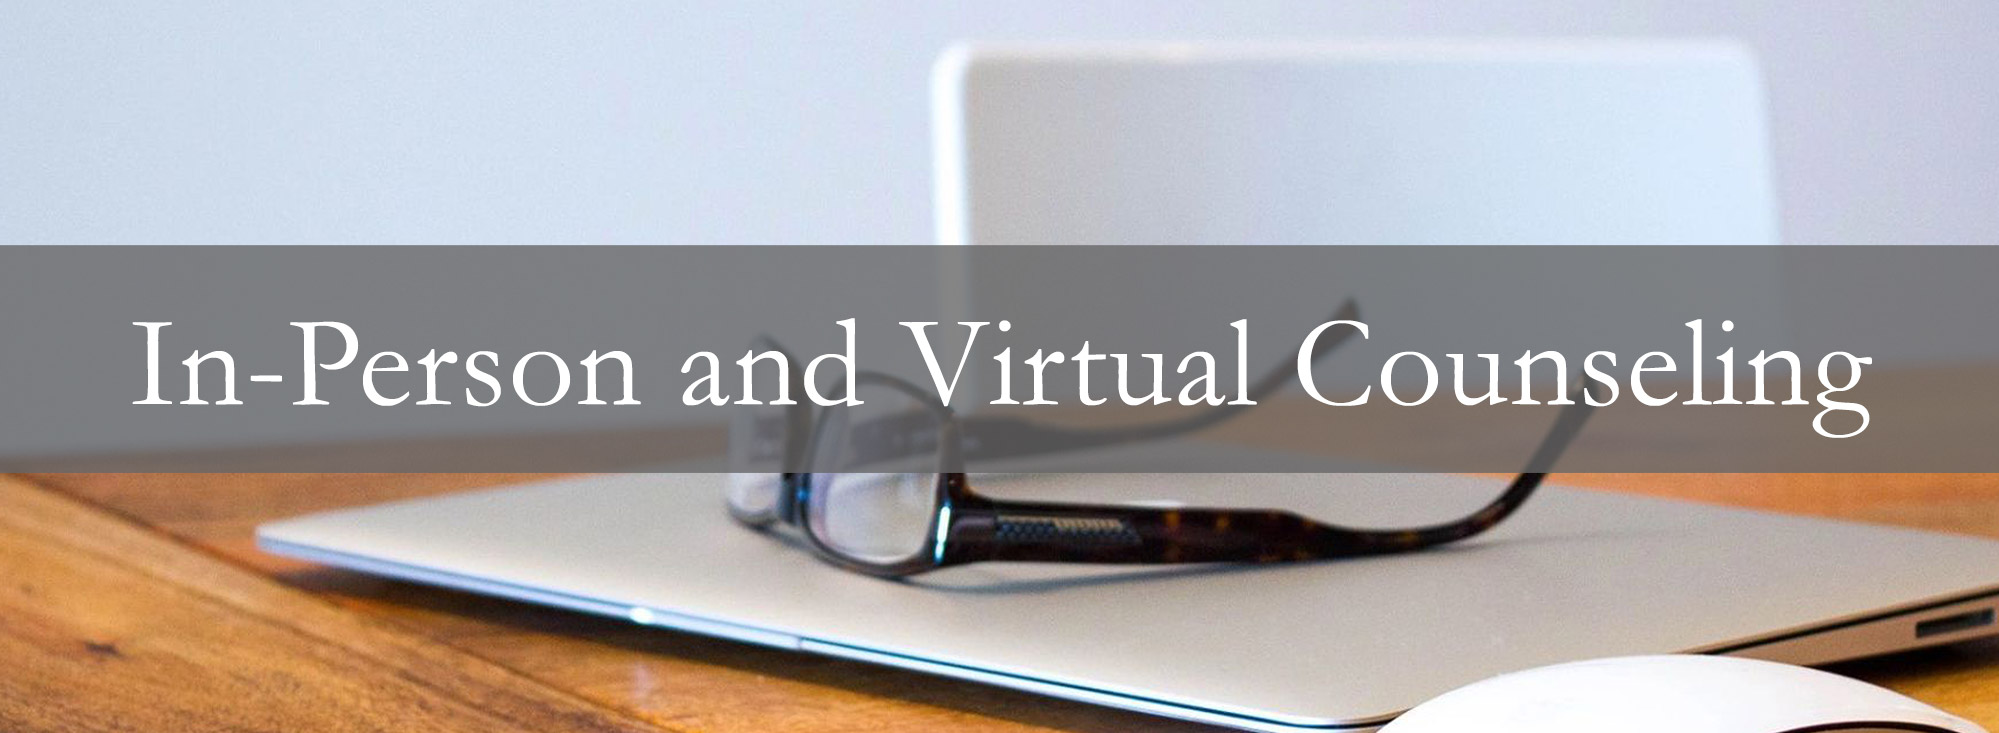 In Person and Virtual Counseling